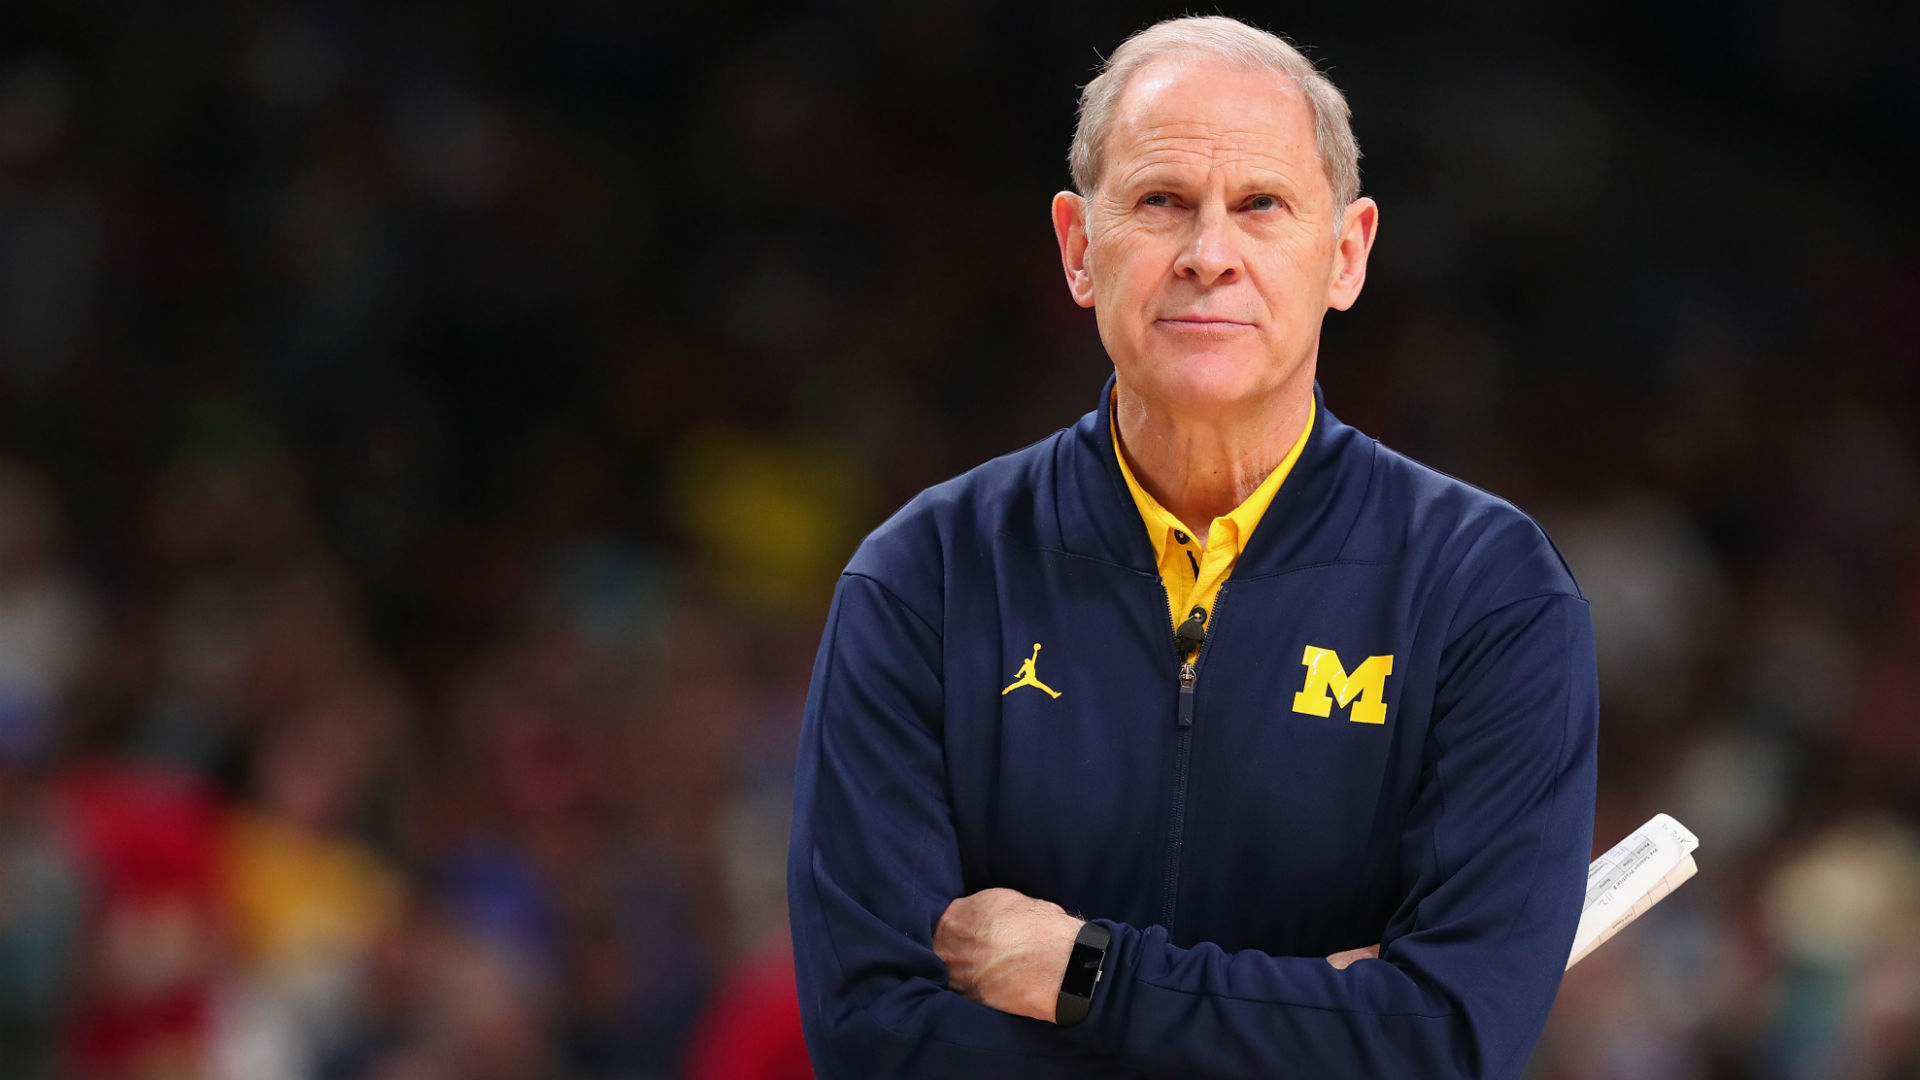 John Beilein Staying At Michigan As Pistons Courtship Ends